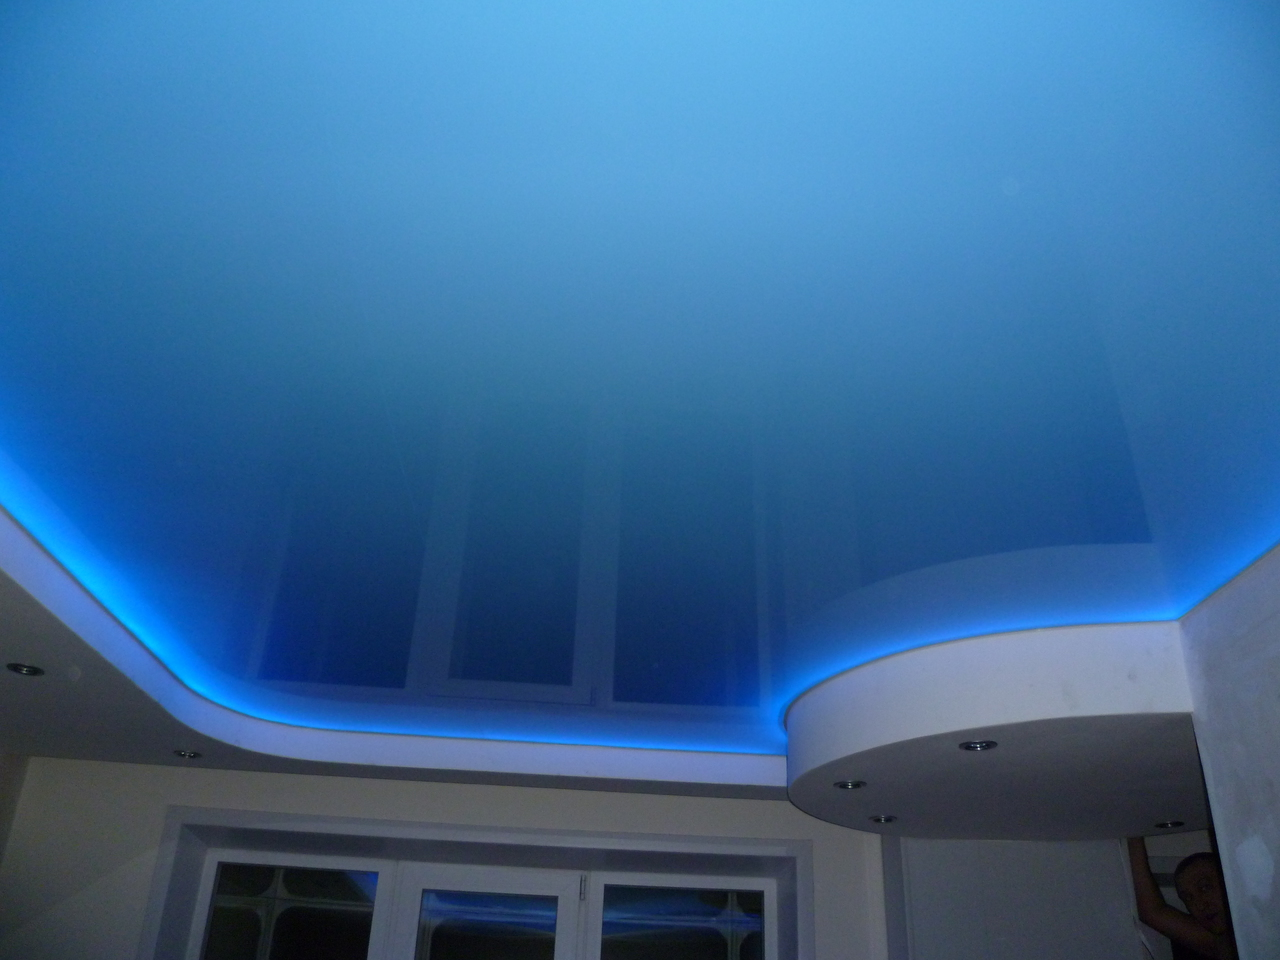 Led Landscape Wiring as well Aa1058 additionally Links moreover 5 Ways To Install Ceiling Led Light Strips moreover Usb Connectors. on home led light strip wiring diagram